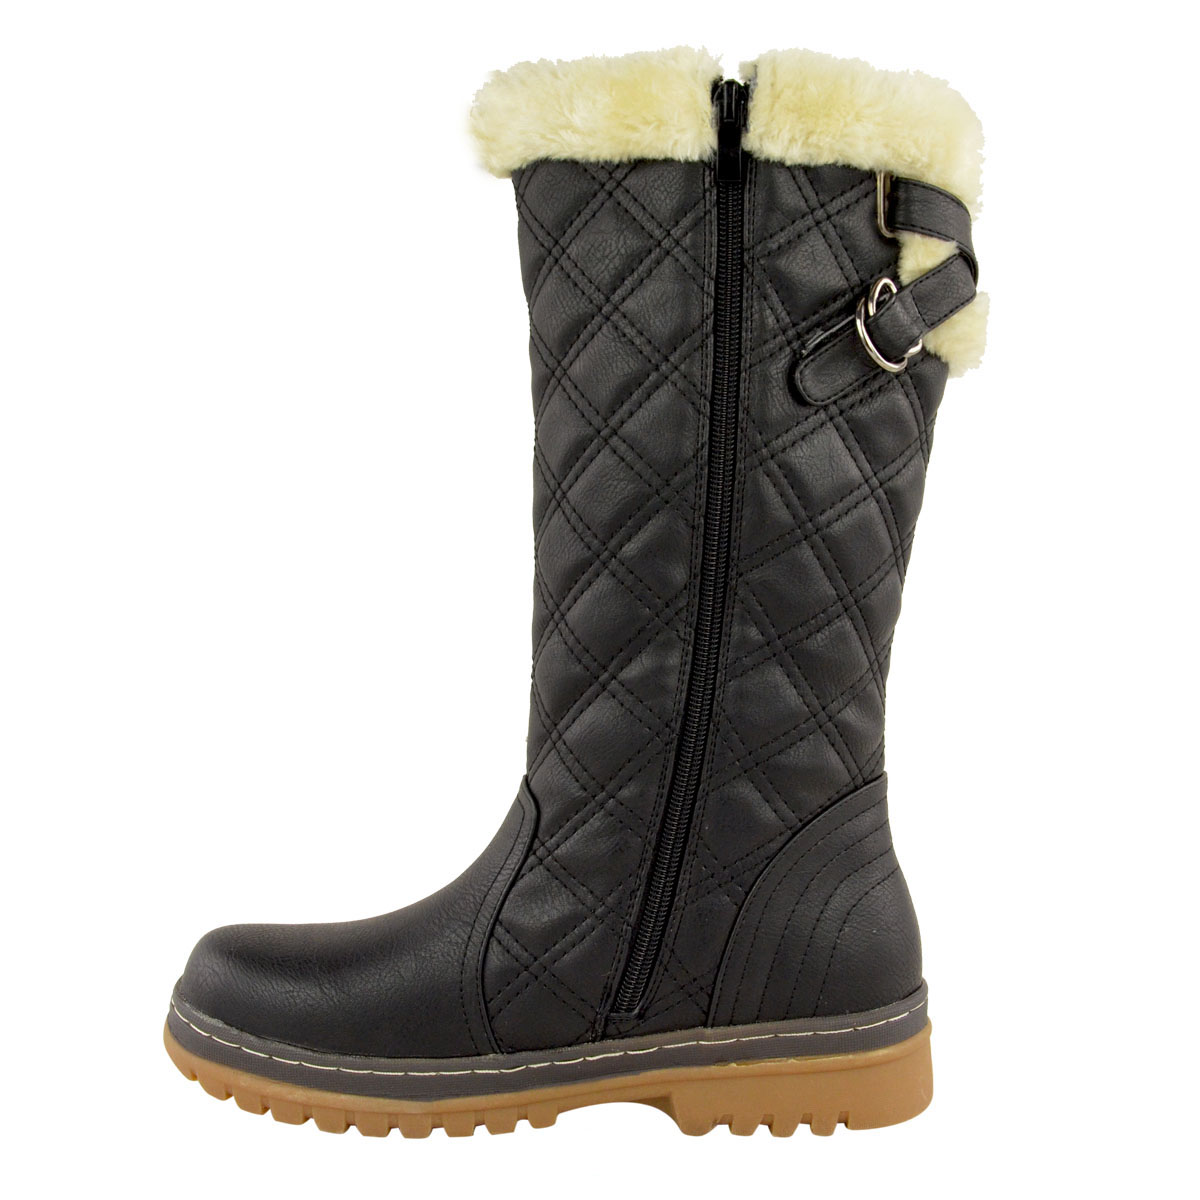 Womens Winter Flat Grip Sole Ankle Boots Faux Fur Hiker Calf Knee High Size